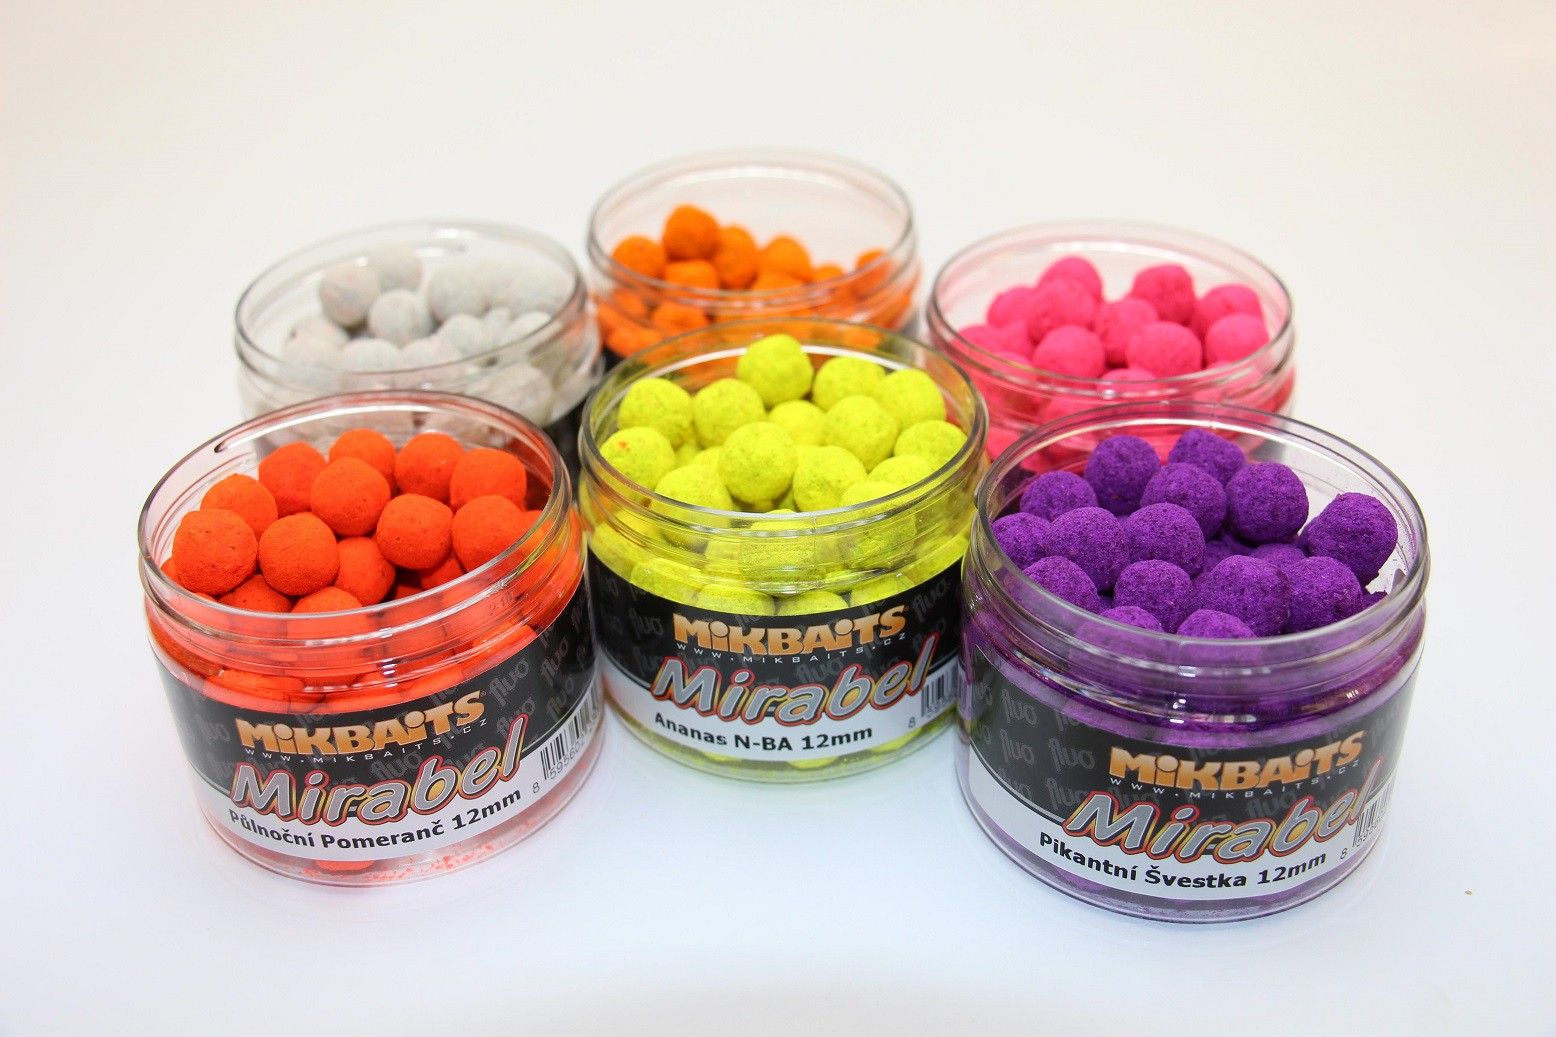 MIKBAITS Mirabel Fluo boilie 150ml - BROSKRV BP 12mm